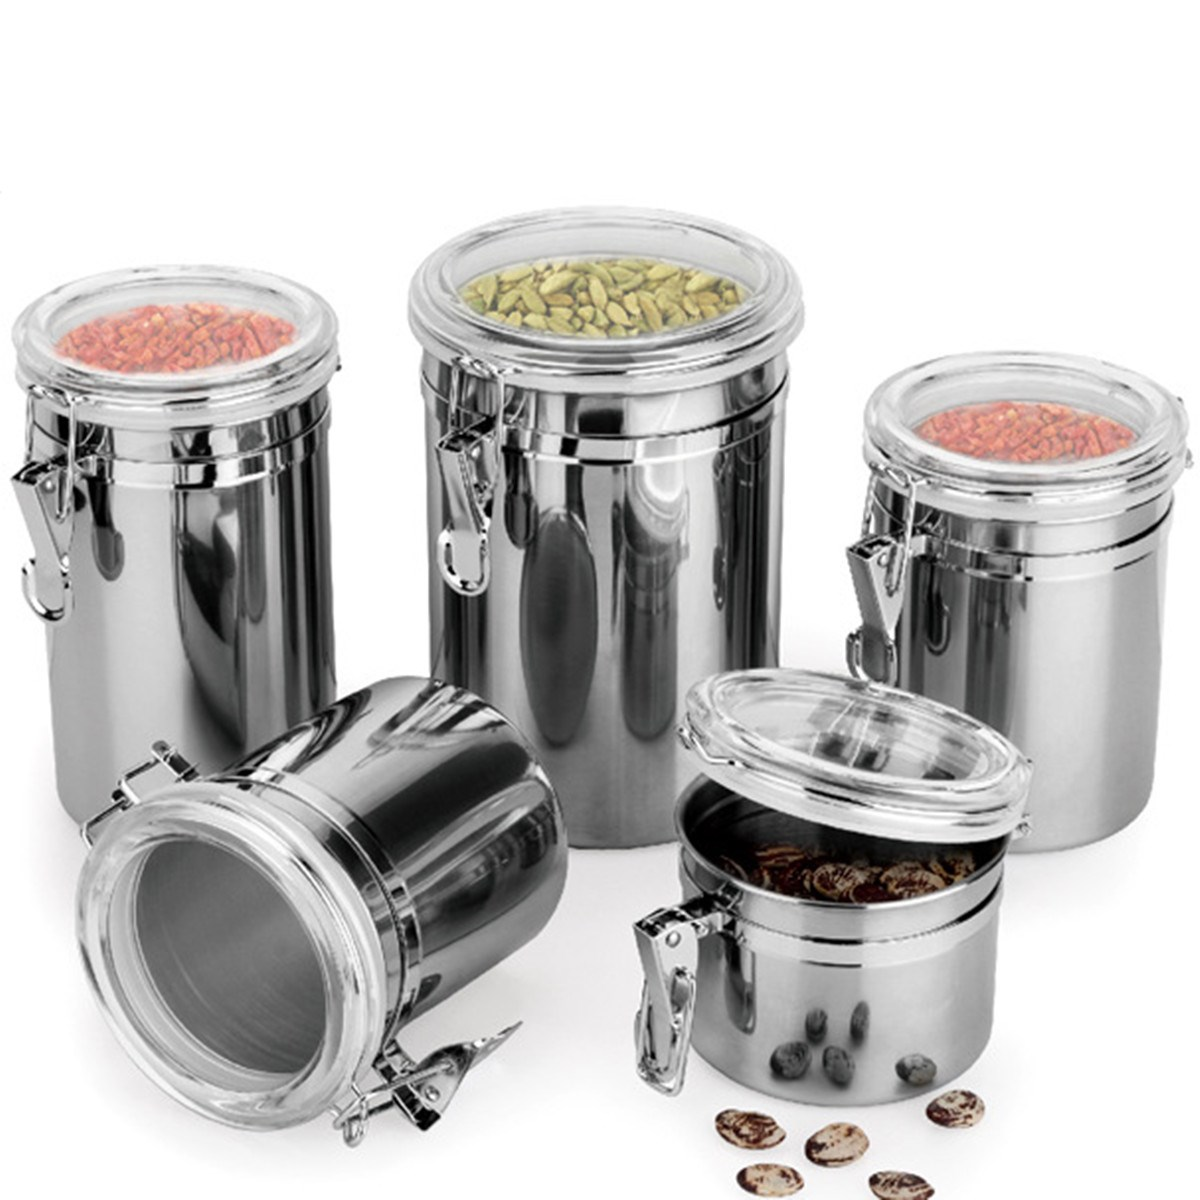 online get cheap coffee container aliexpress com alibaba group kitchen container boxes 4 size metal storage food bottles sugar tea coffee beans canisters snack cans